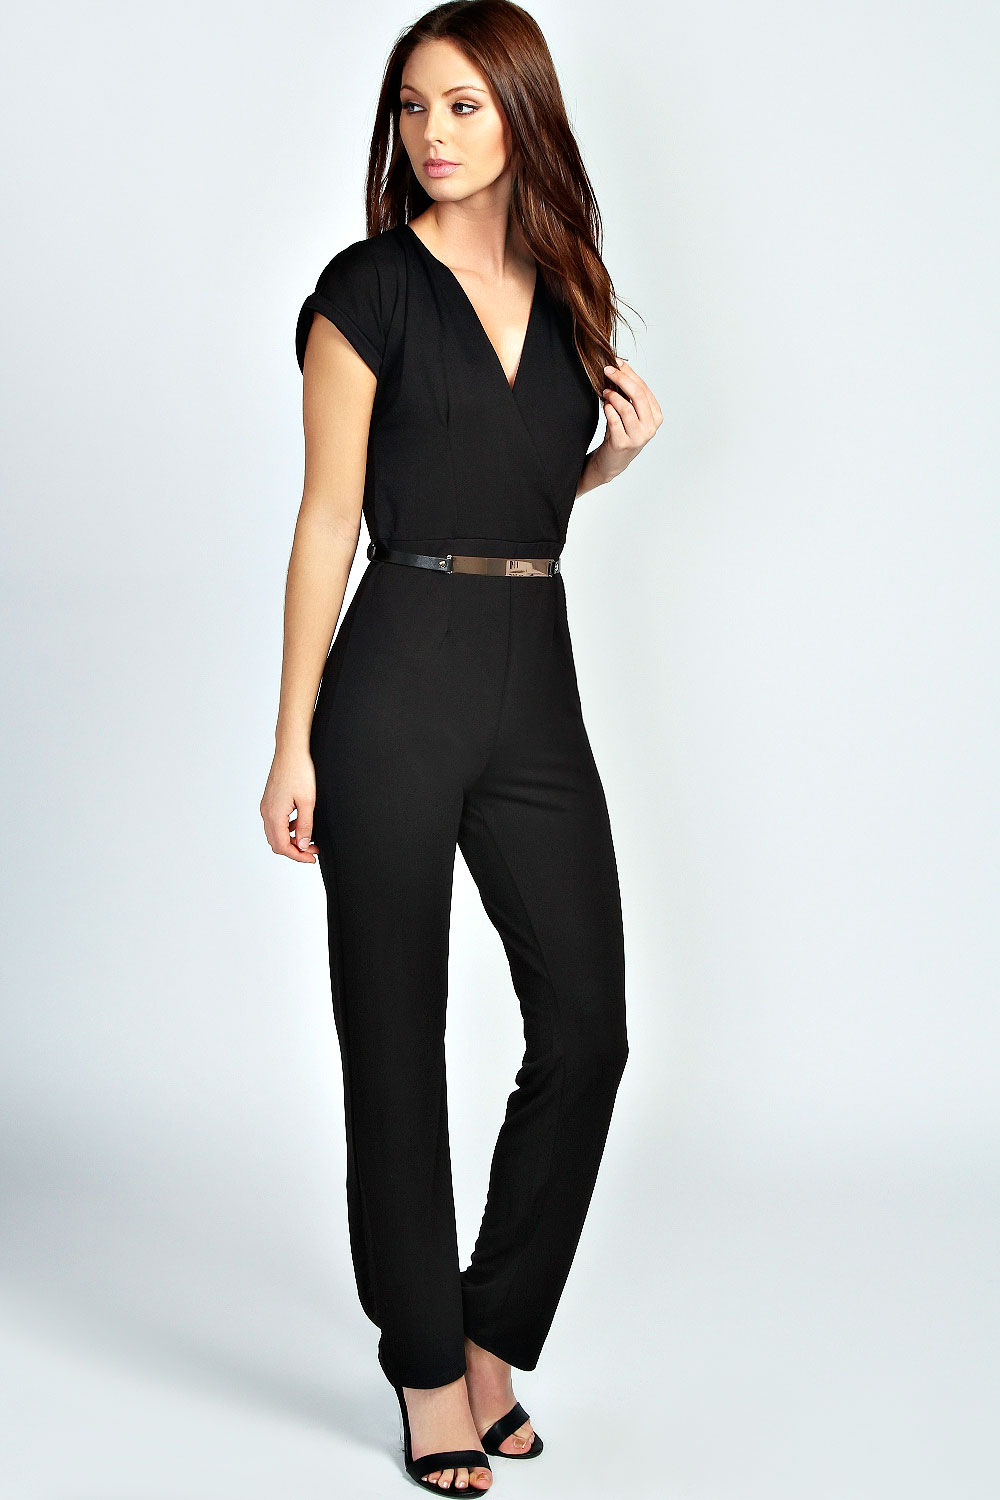 Shop Inexpensive Cute Rompers and Jumpsuits for Women at Old Navy Online. Old Navy rompers for women are easy for one-stop dressing. Spaghetti straps, sleeveless styles and short sleeves give you an option for every occasion. Choose affordable jumpsuits with a V-neckline and wide legs for night. Worn with metallic accessories and stacked.